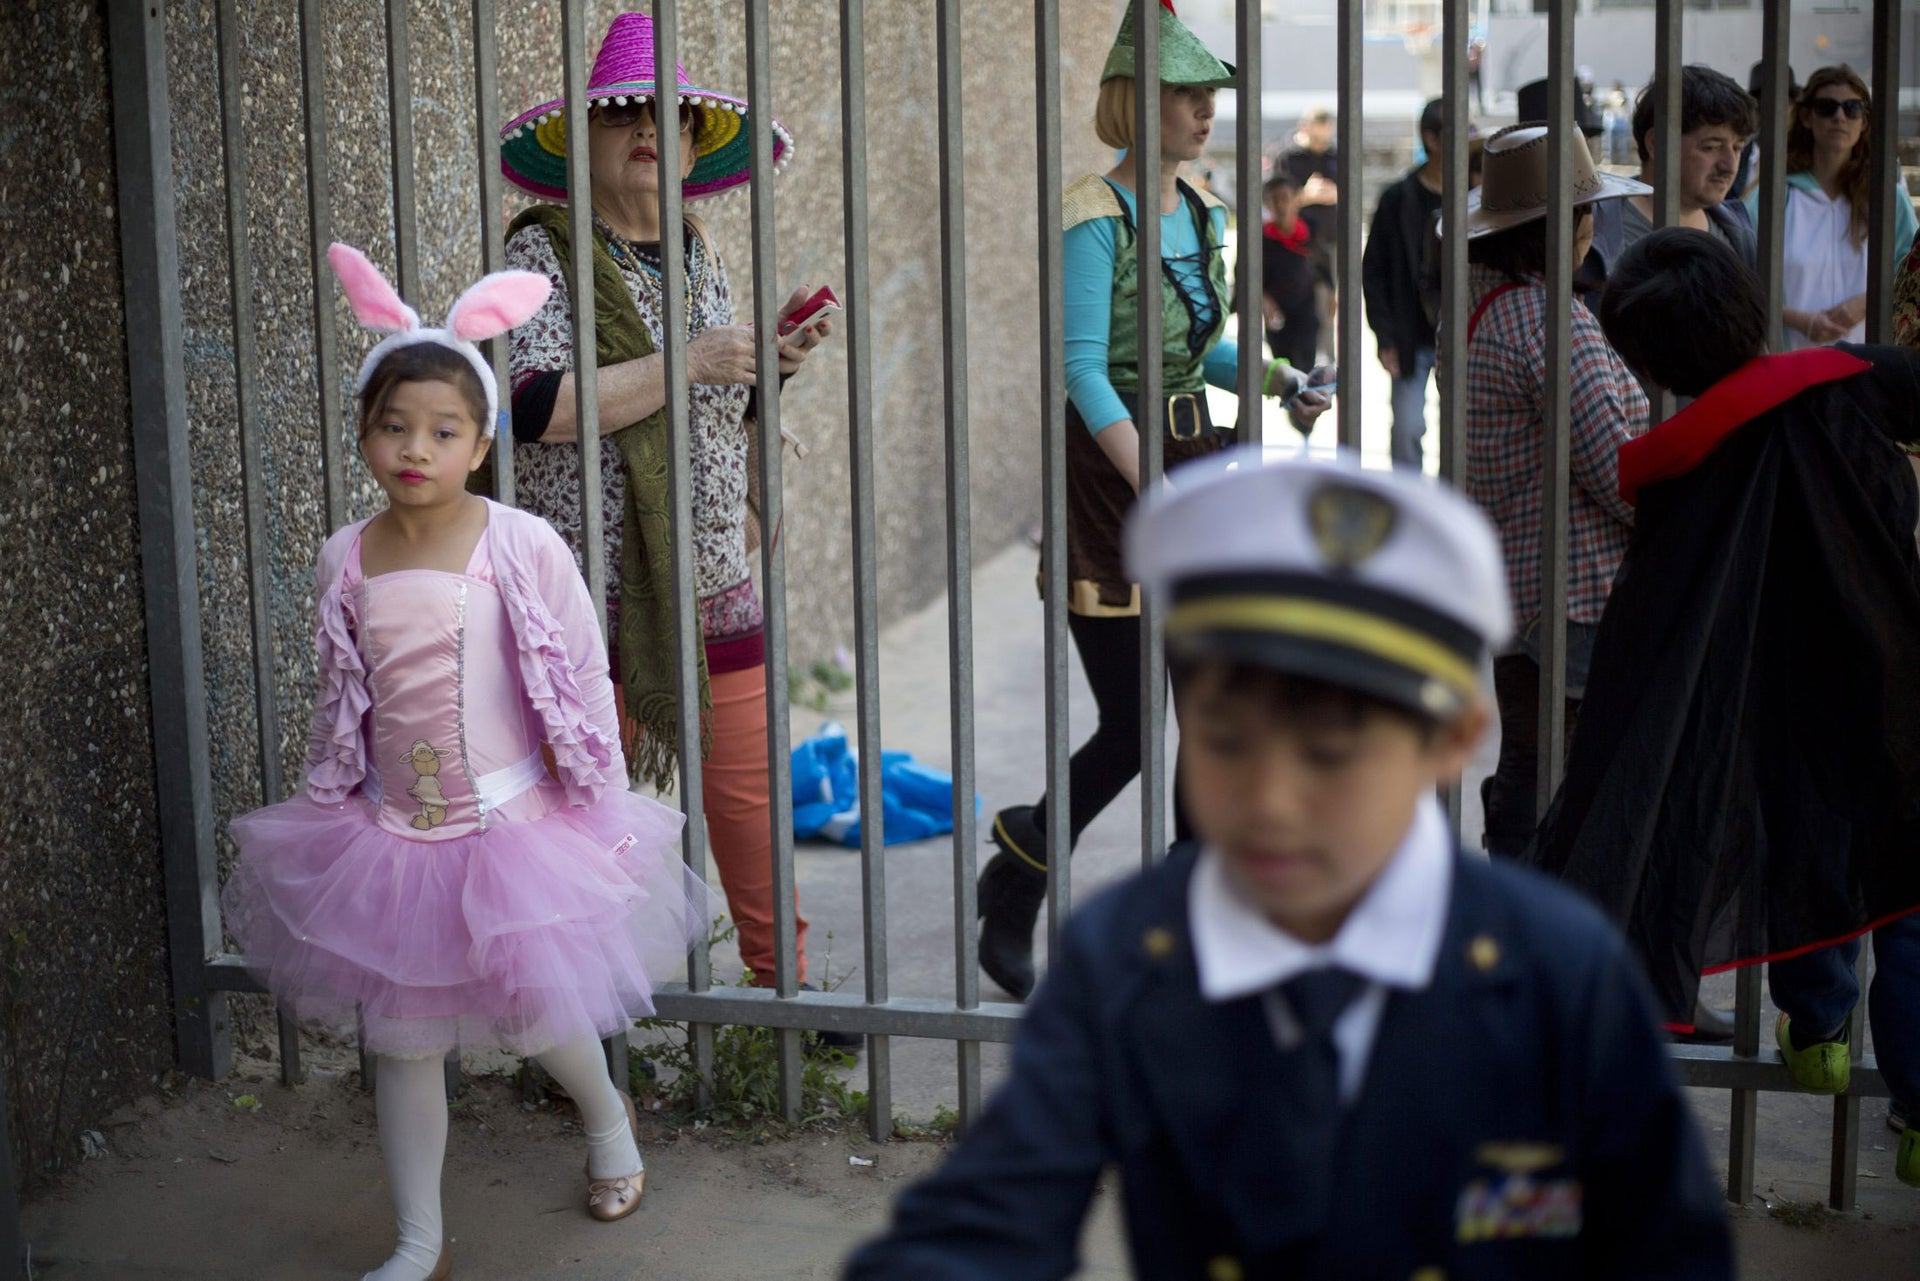 Foreign migrant workers children celebrate the Purim festival in Tel Aviv, Israel, Tuesday, March 22, 2016.